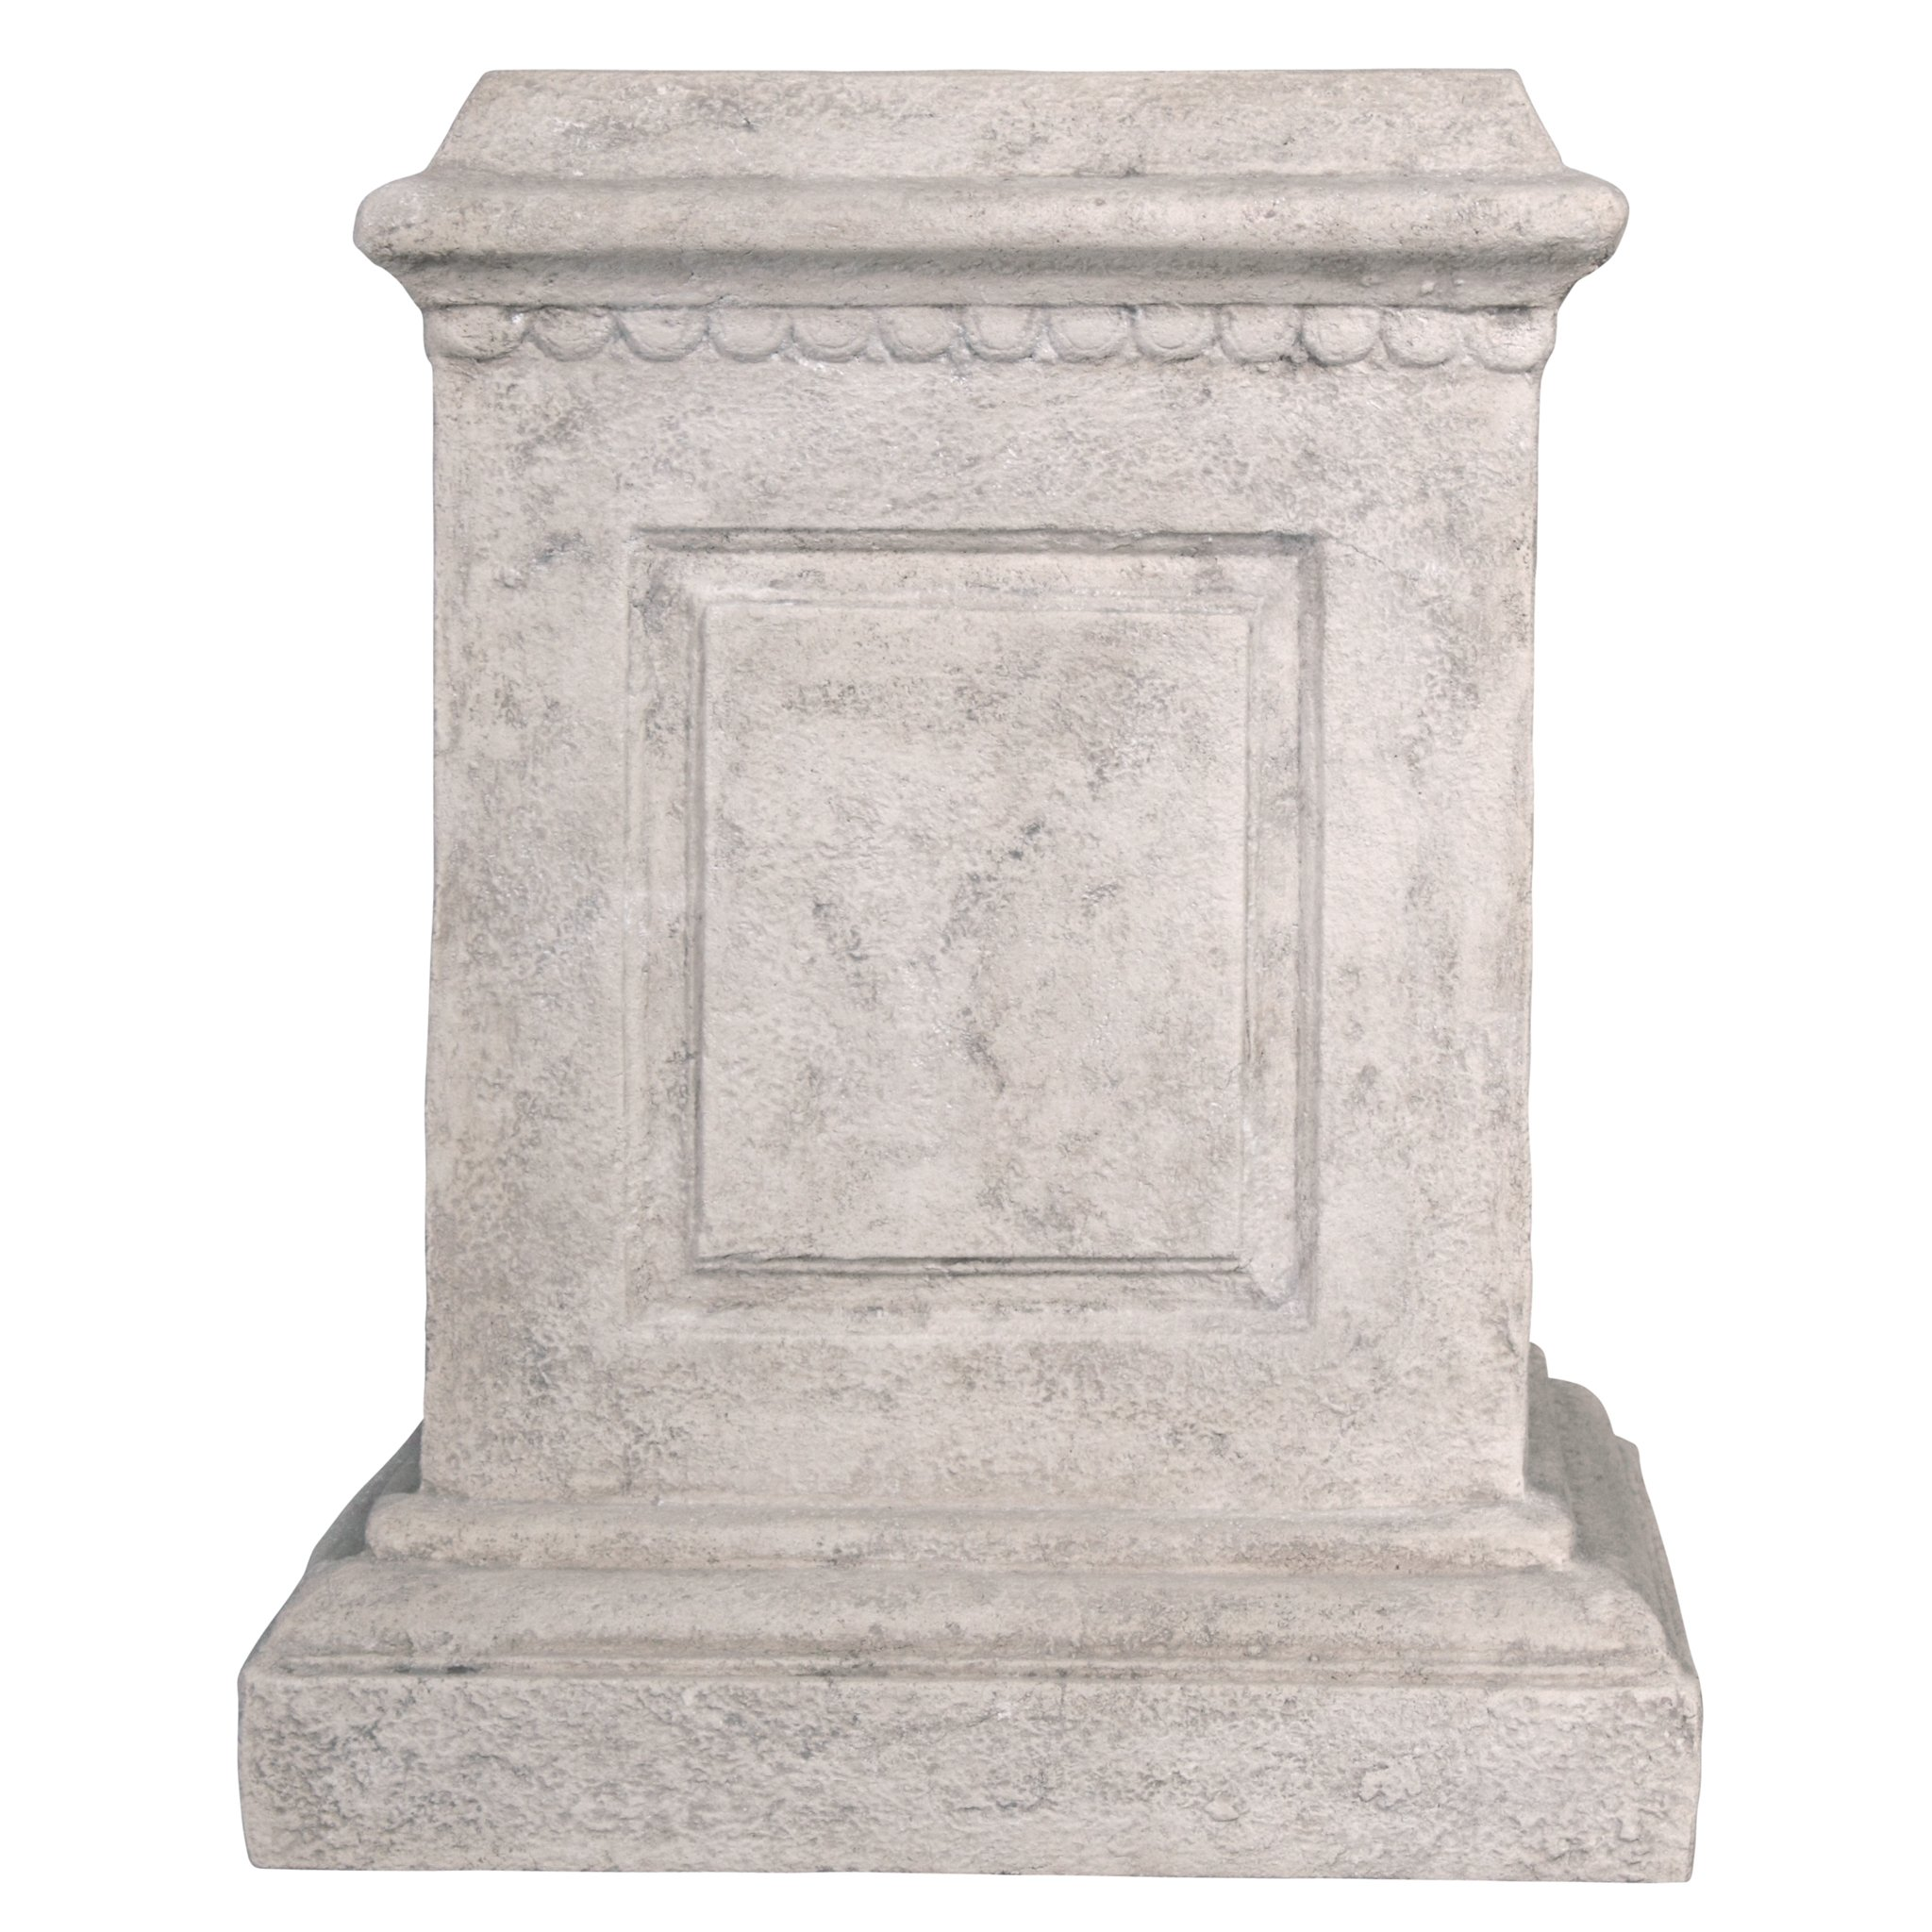 Design Toscano Larkin Arts and Crafts Architectural Plinth Pedestal by Design Toscano